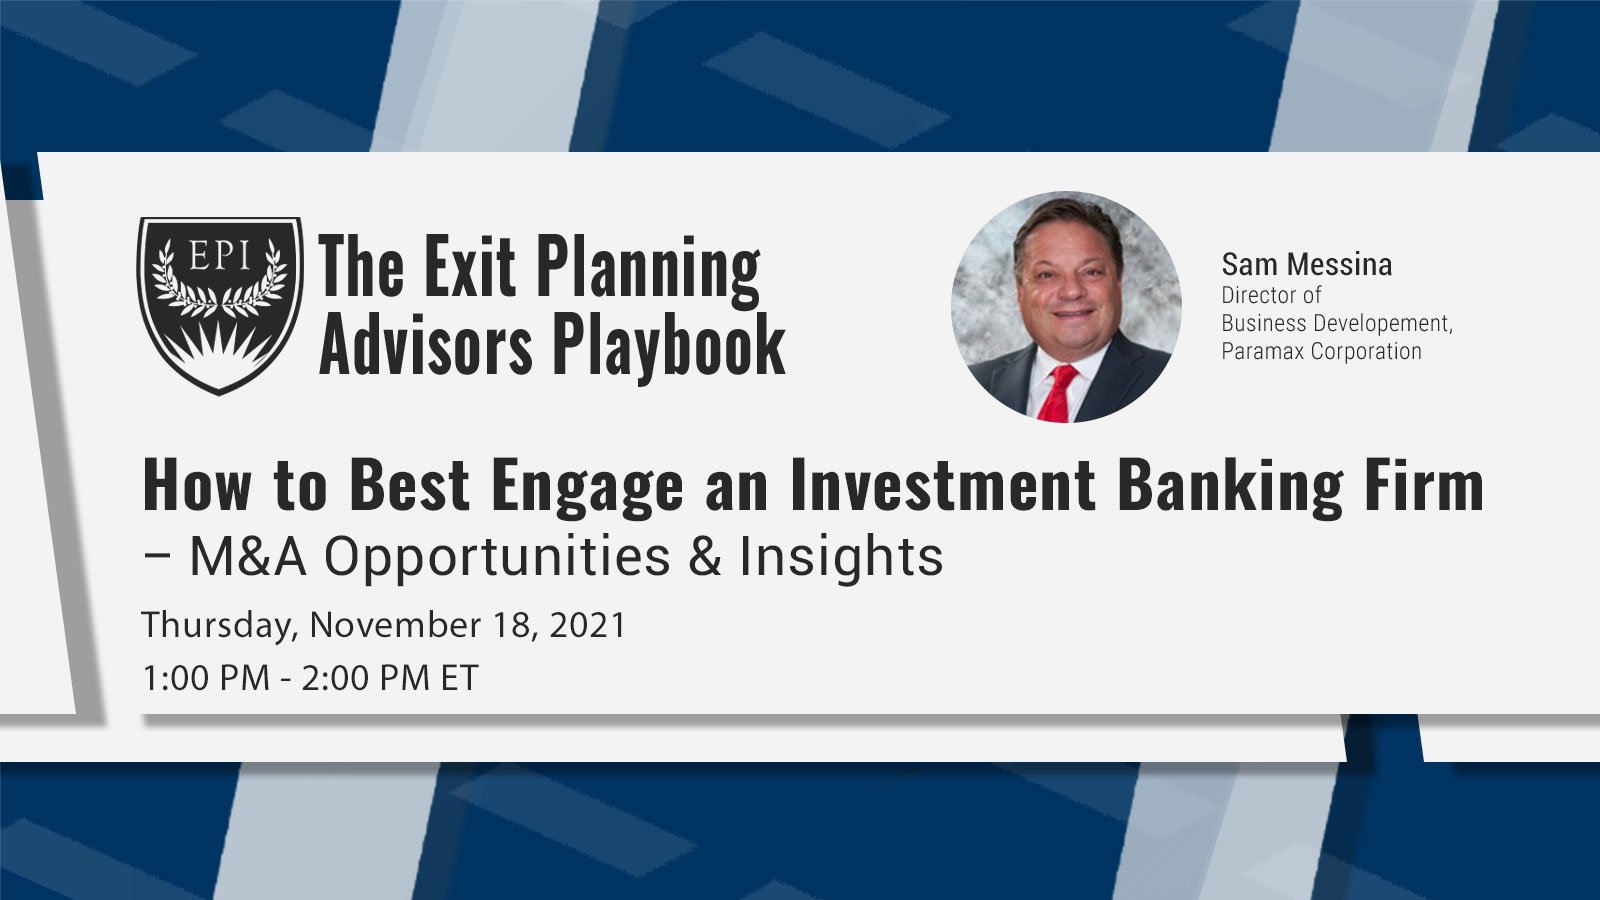 How to Best Engage an Investment Banking Firm